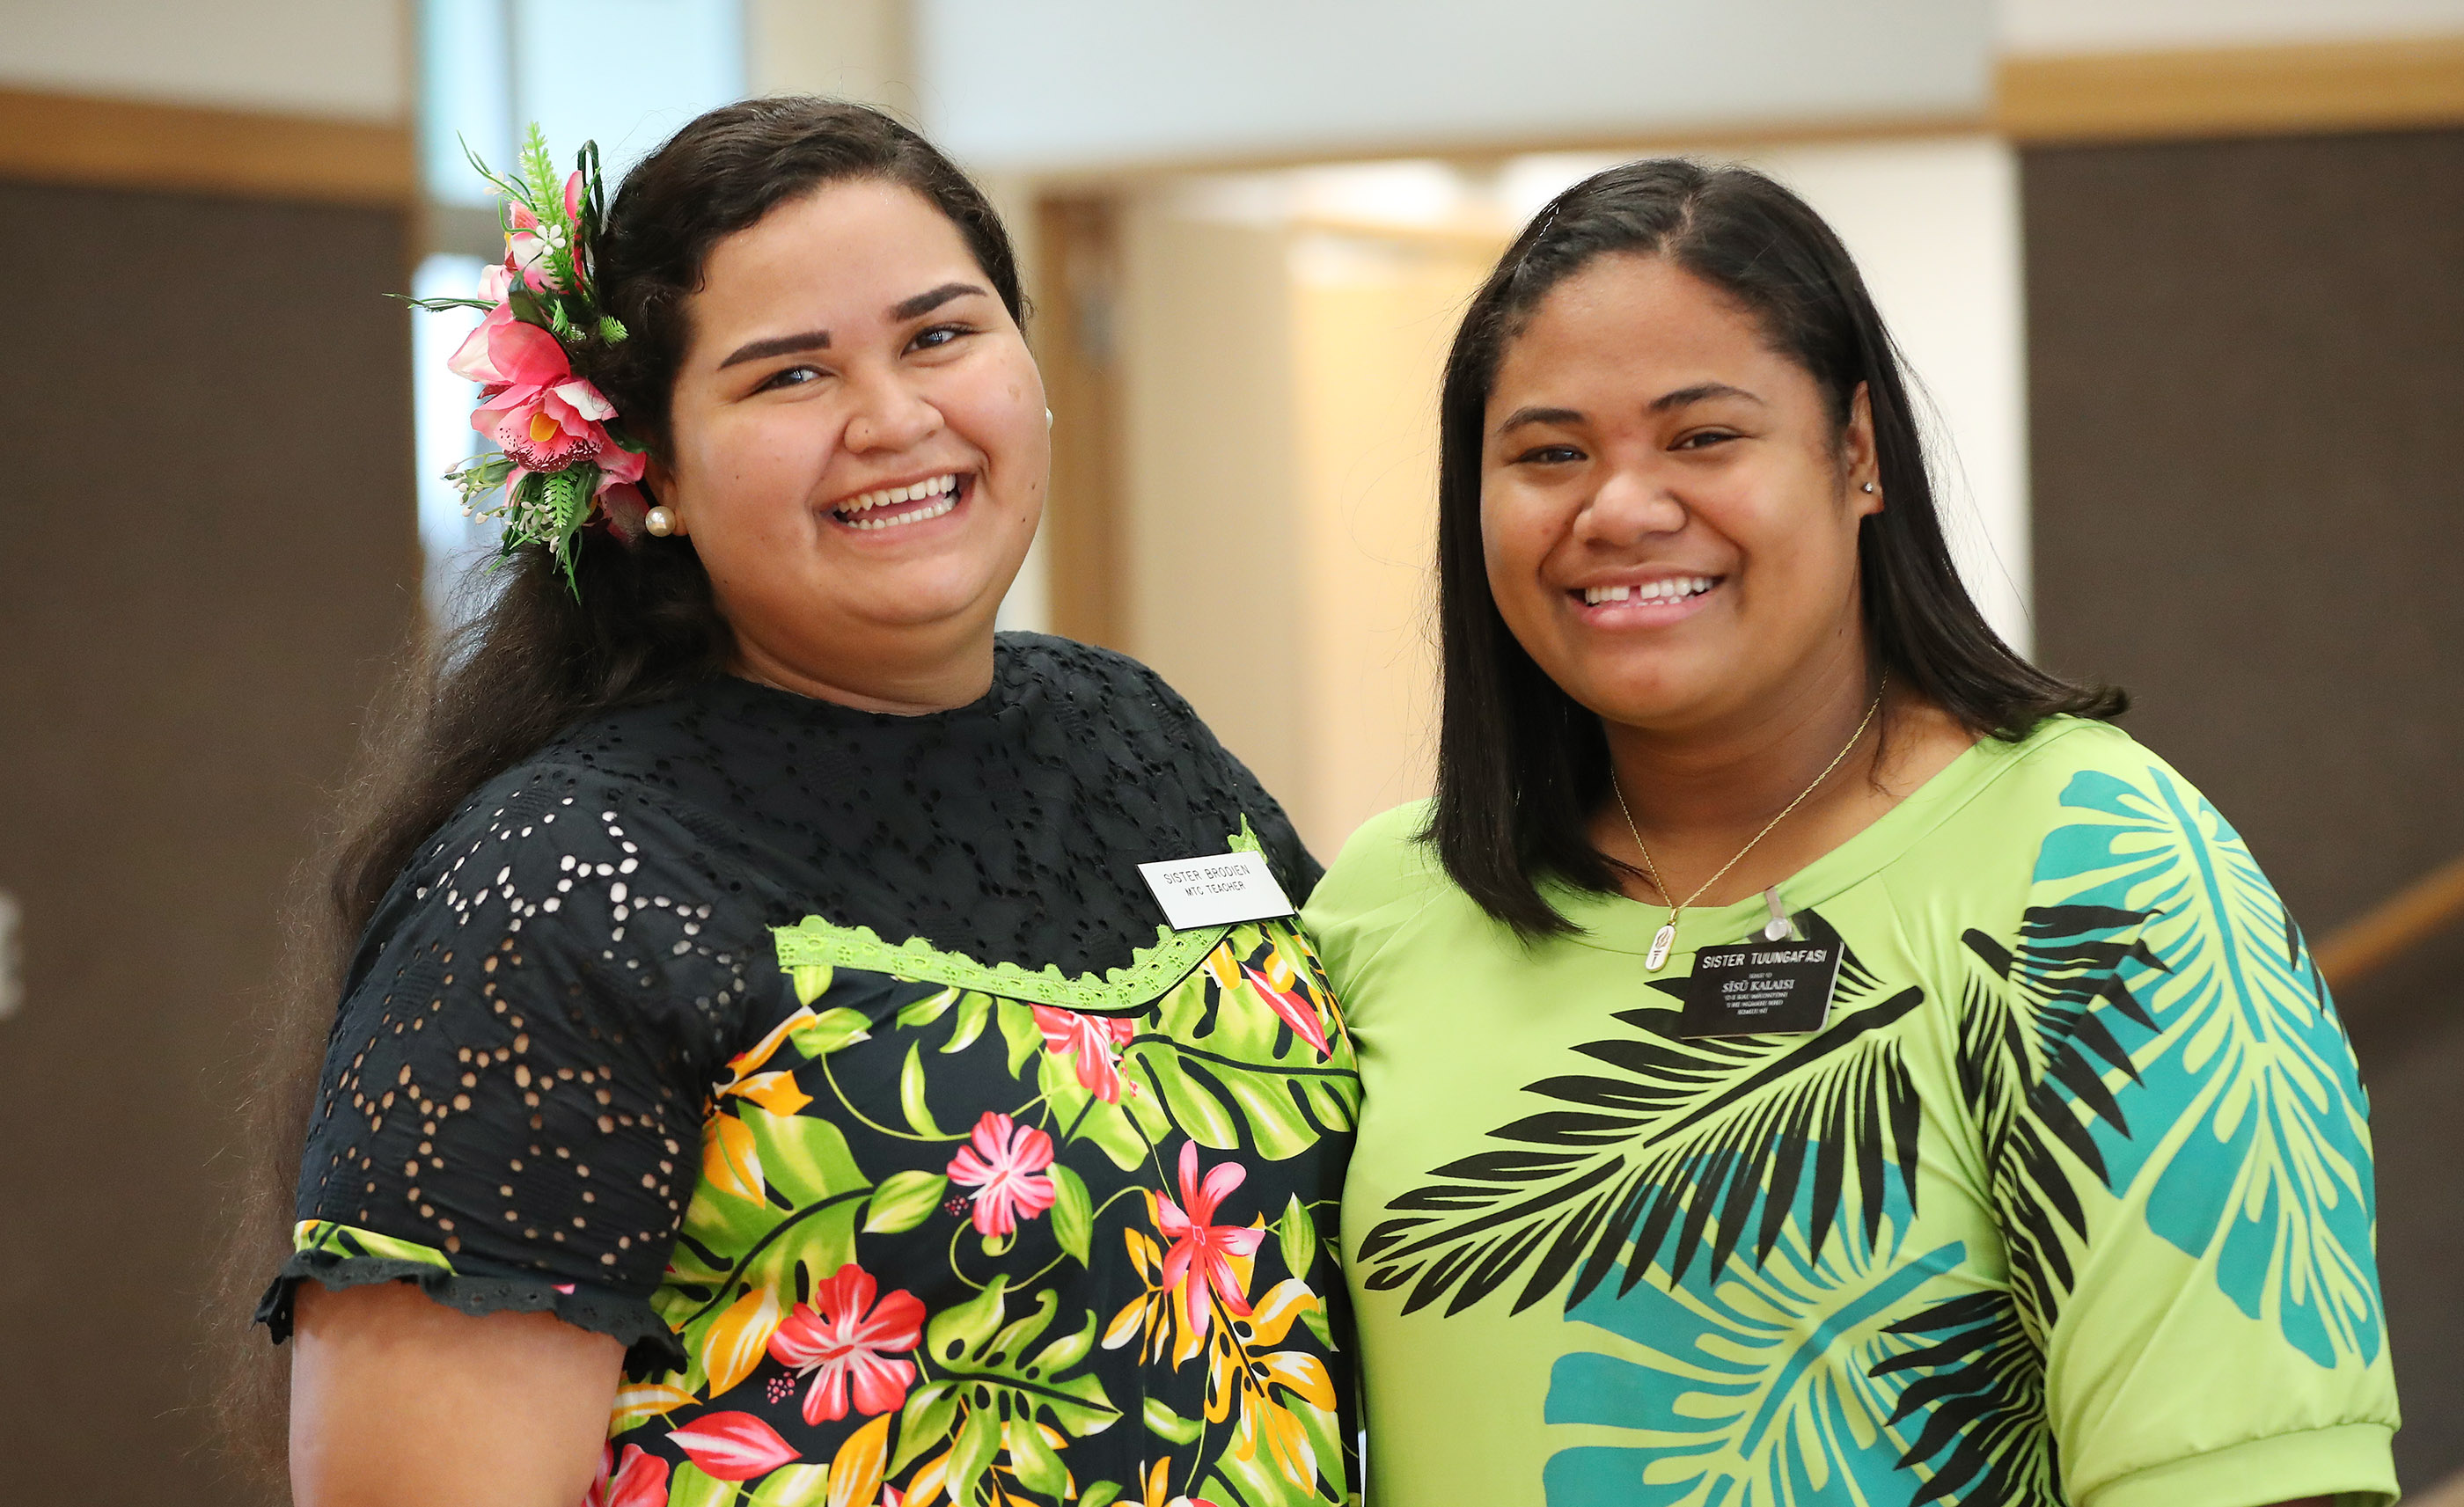 Sister missionaries Matainumera Rayleen and Tusani Tuungafasi in Auckland, New Zealand, on Tuesday, May 21, 2019.